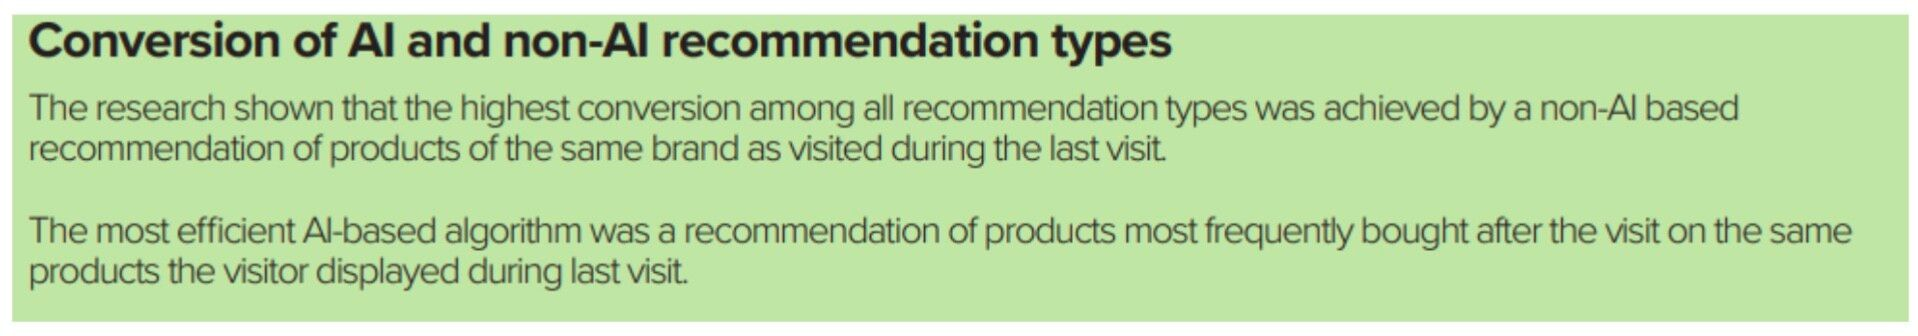 Conversion of AI and non-AI recommendation types.